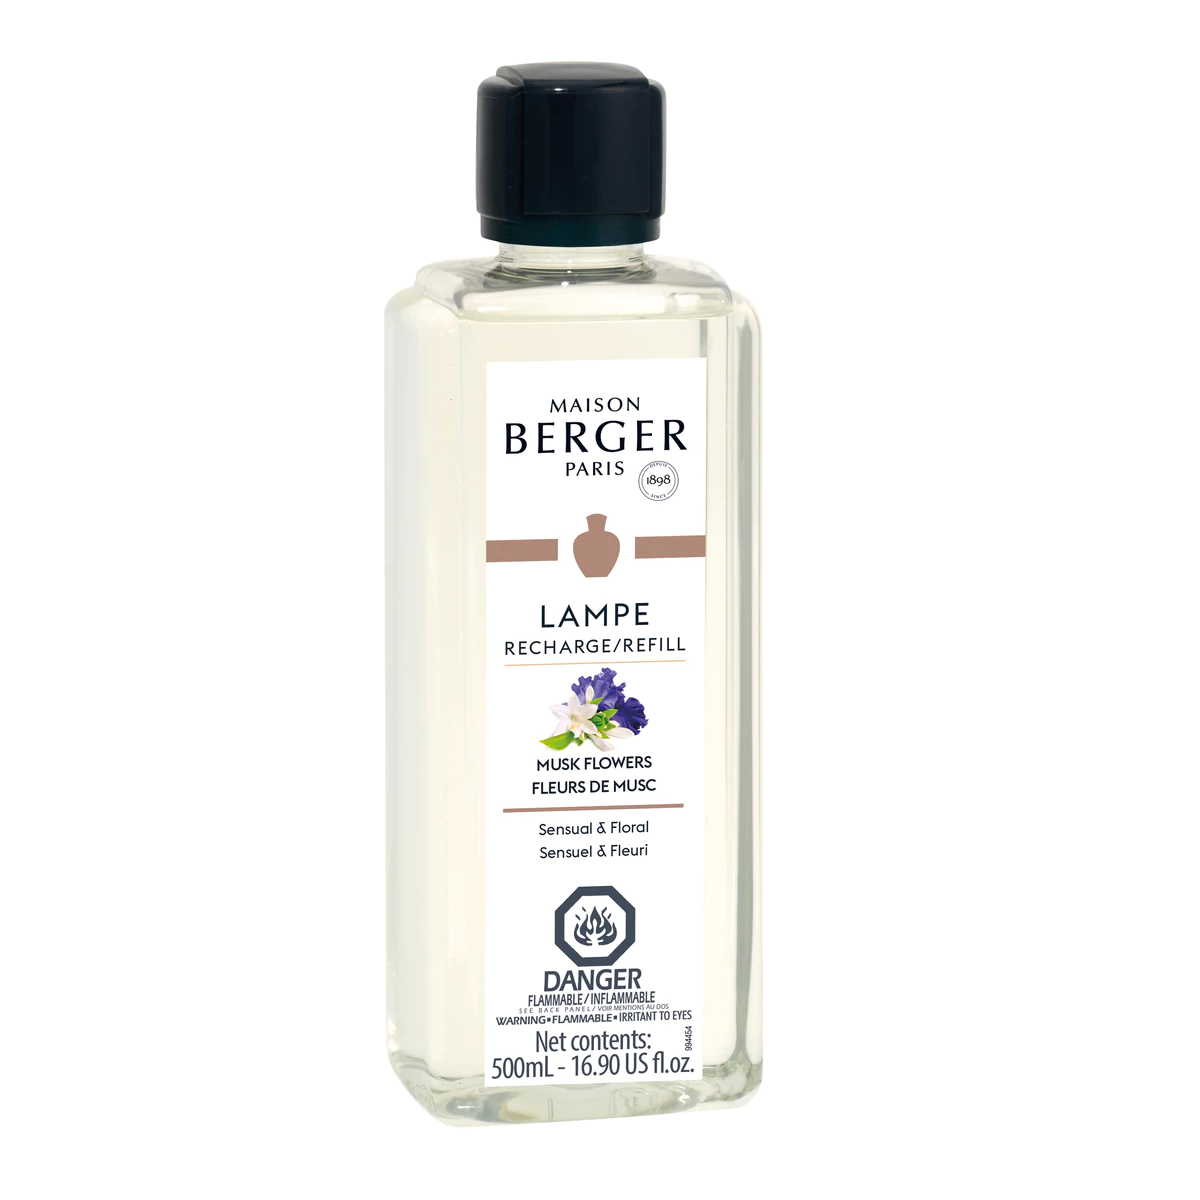 Maison Berger 500ml Fragrance, Musk Flowers